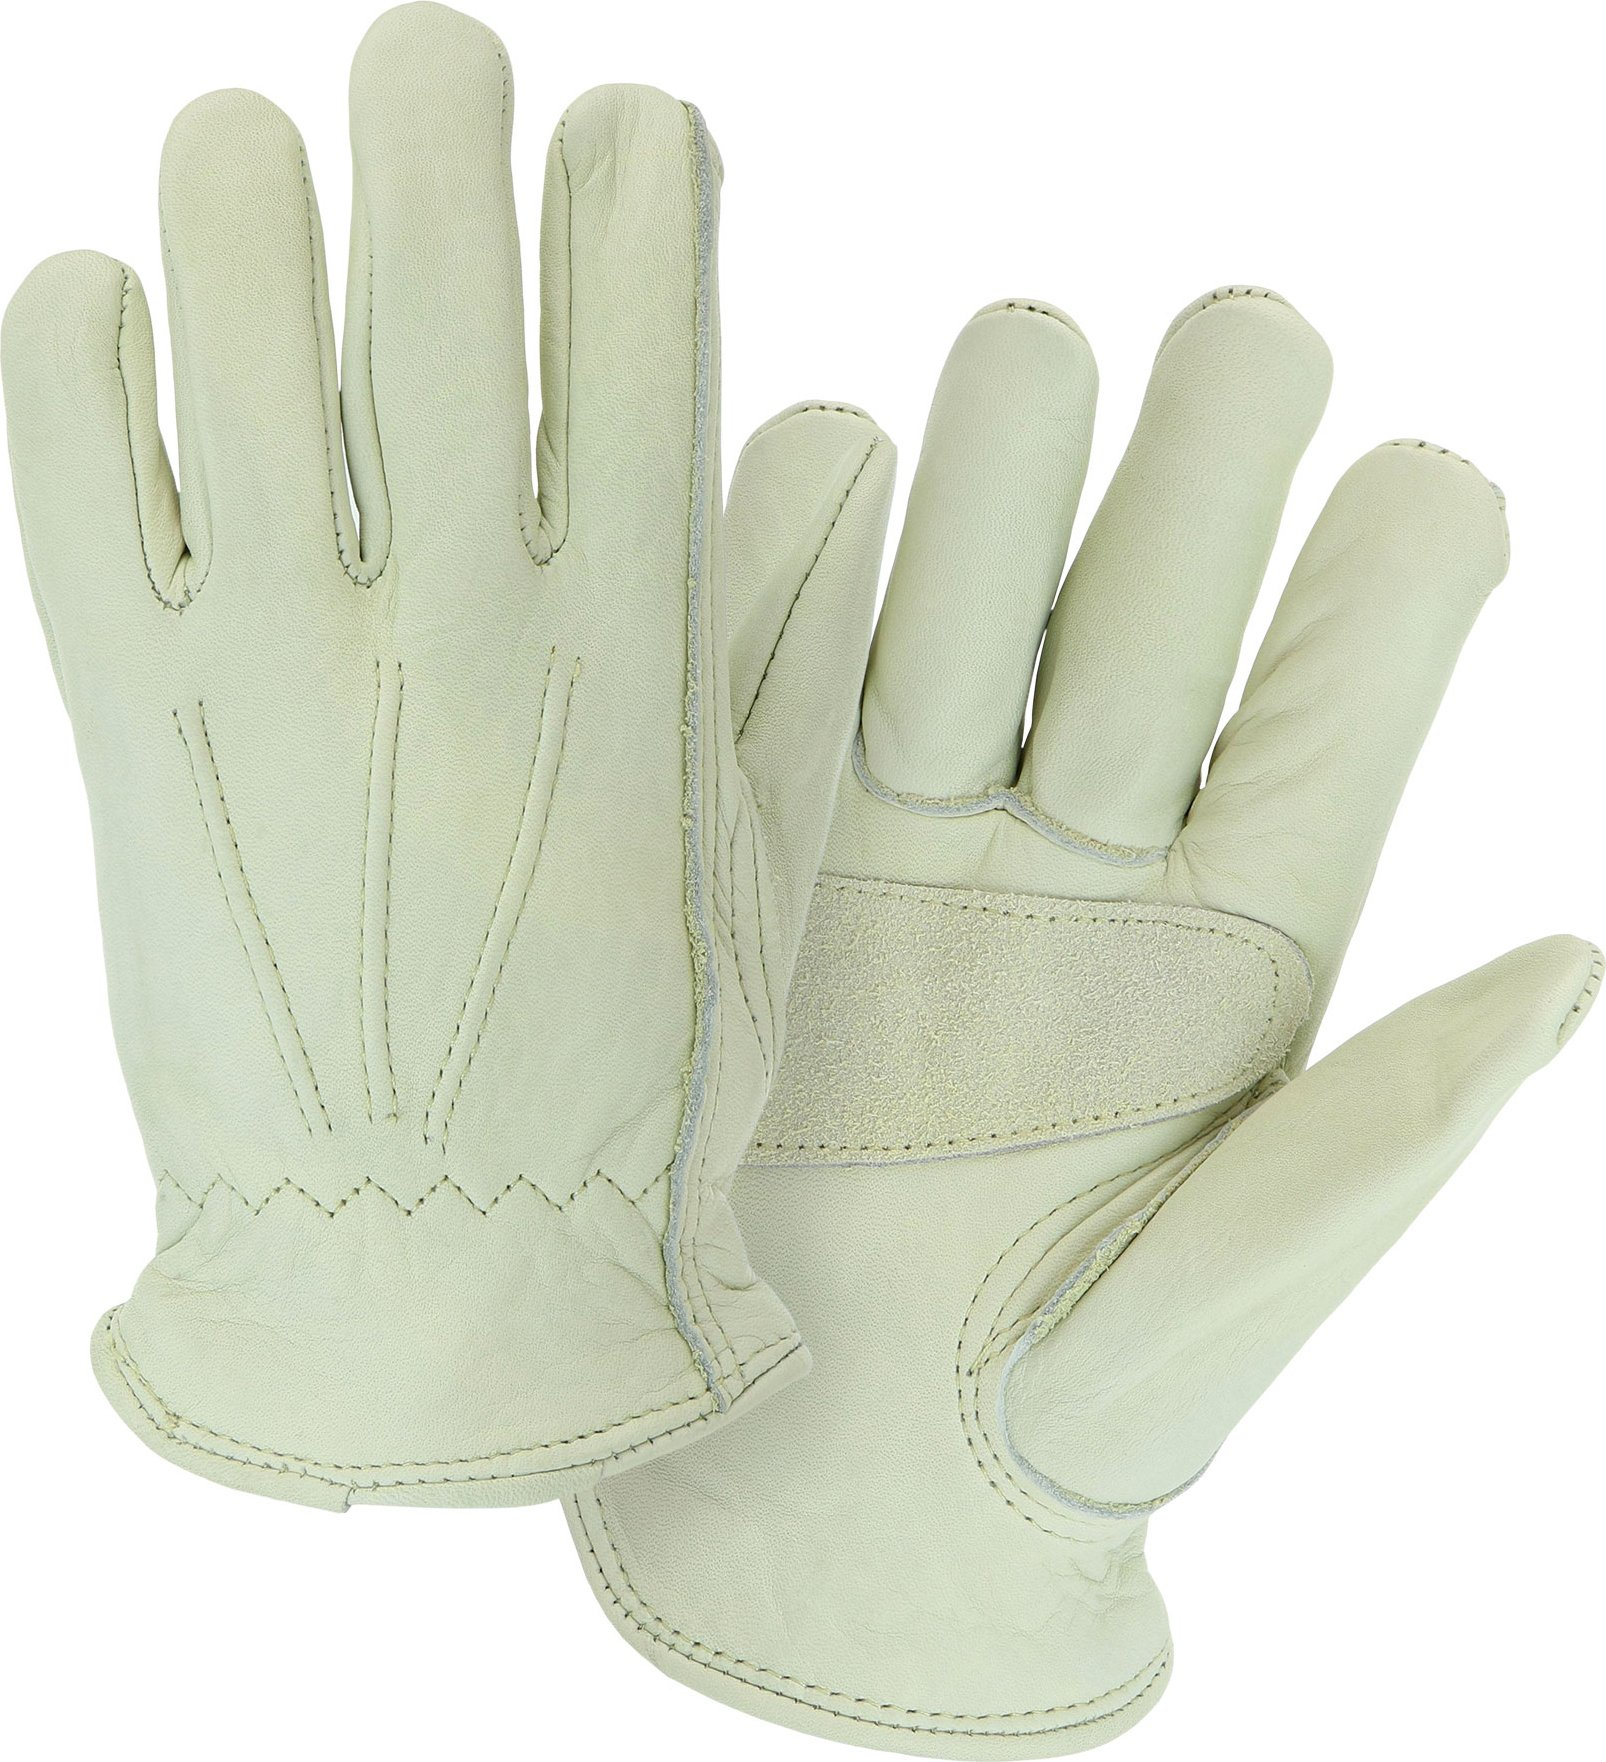 West Chester 84000 Master Guard Premium Grain Cowhide Leather Driver Work Gloves: Small, 1 Pair